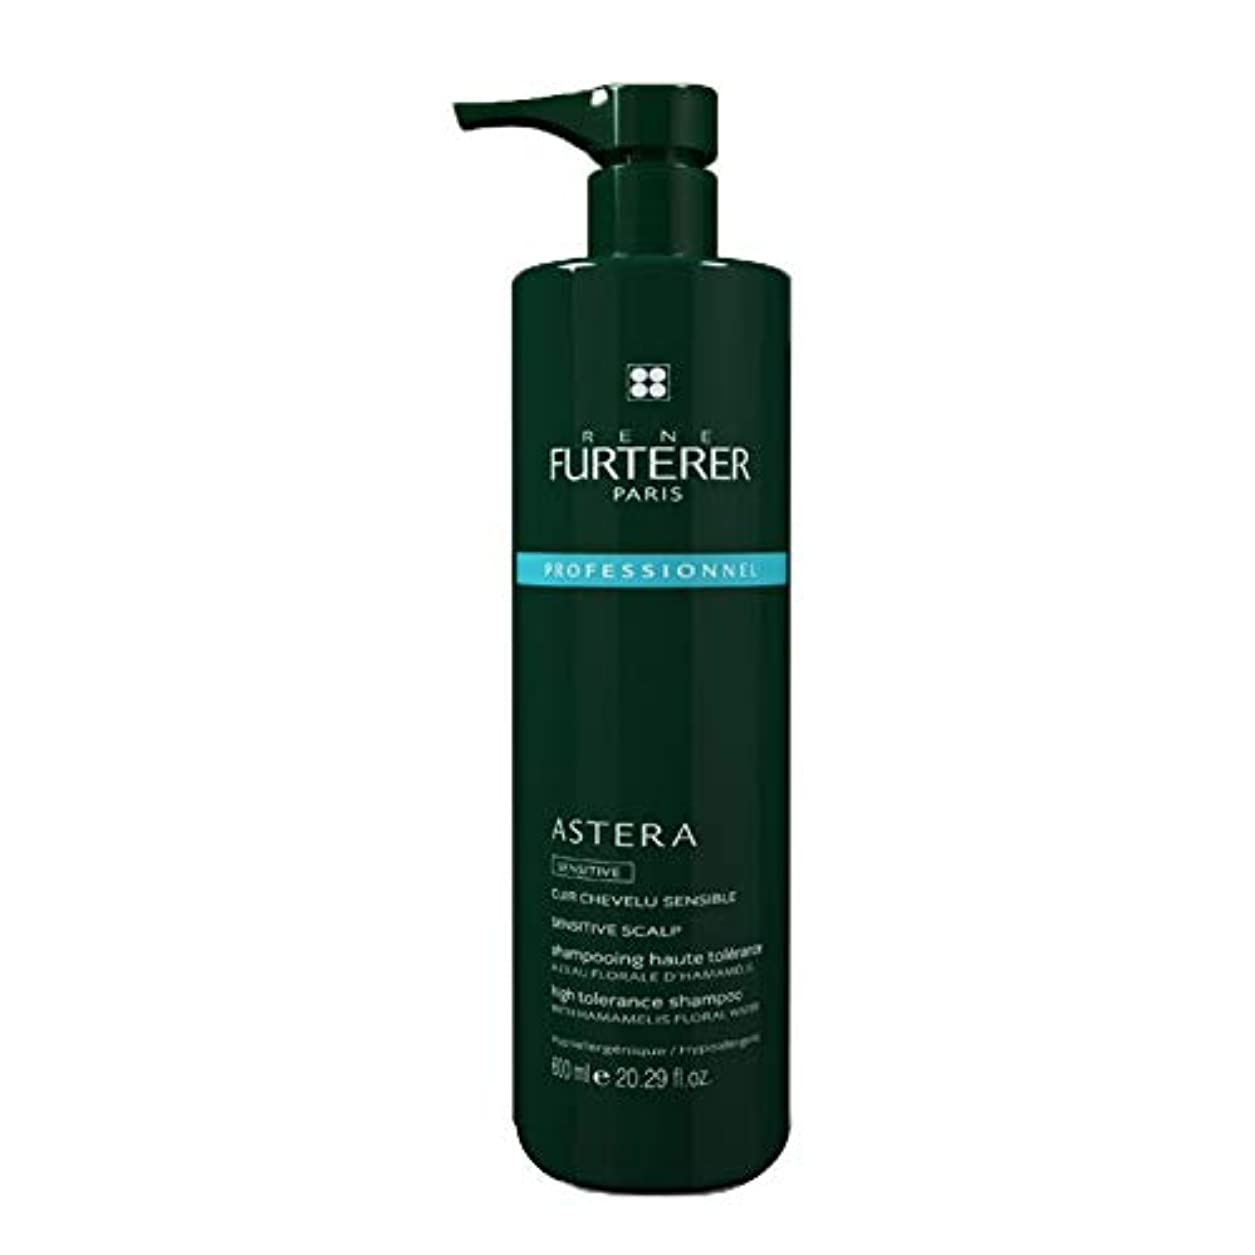 保証ニュース性差別ルネ フルトレール Astera Sensitive High Tolerance Scalp Ritual Dermo-Protective Shampoo (Sensitive Scalp) 600ml/20.2oz...